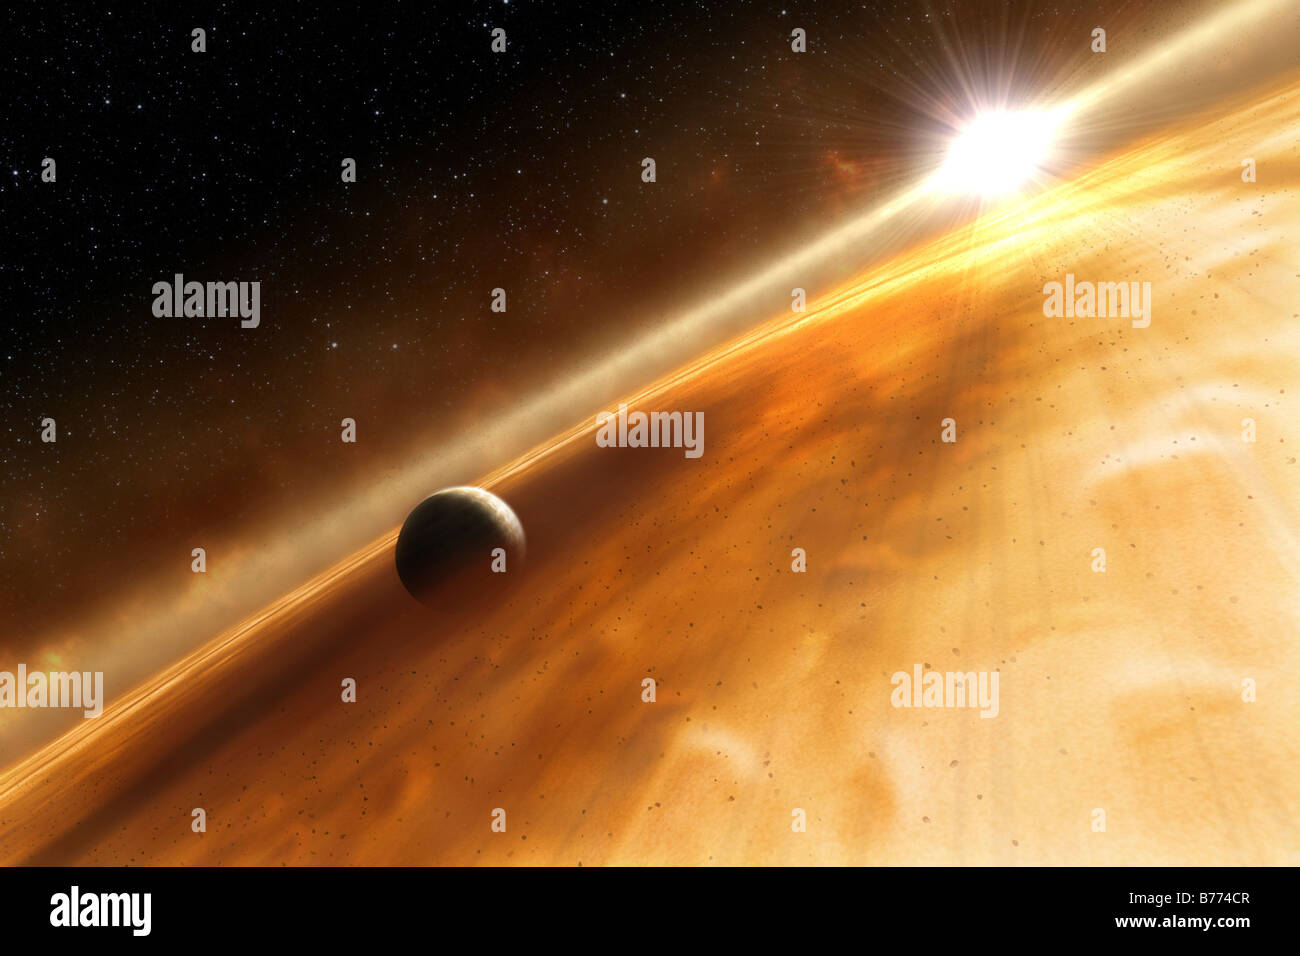 Artist's concept of the star Fomalhaut and a Jupiter-type planet. - Stock Image